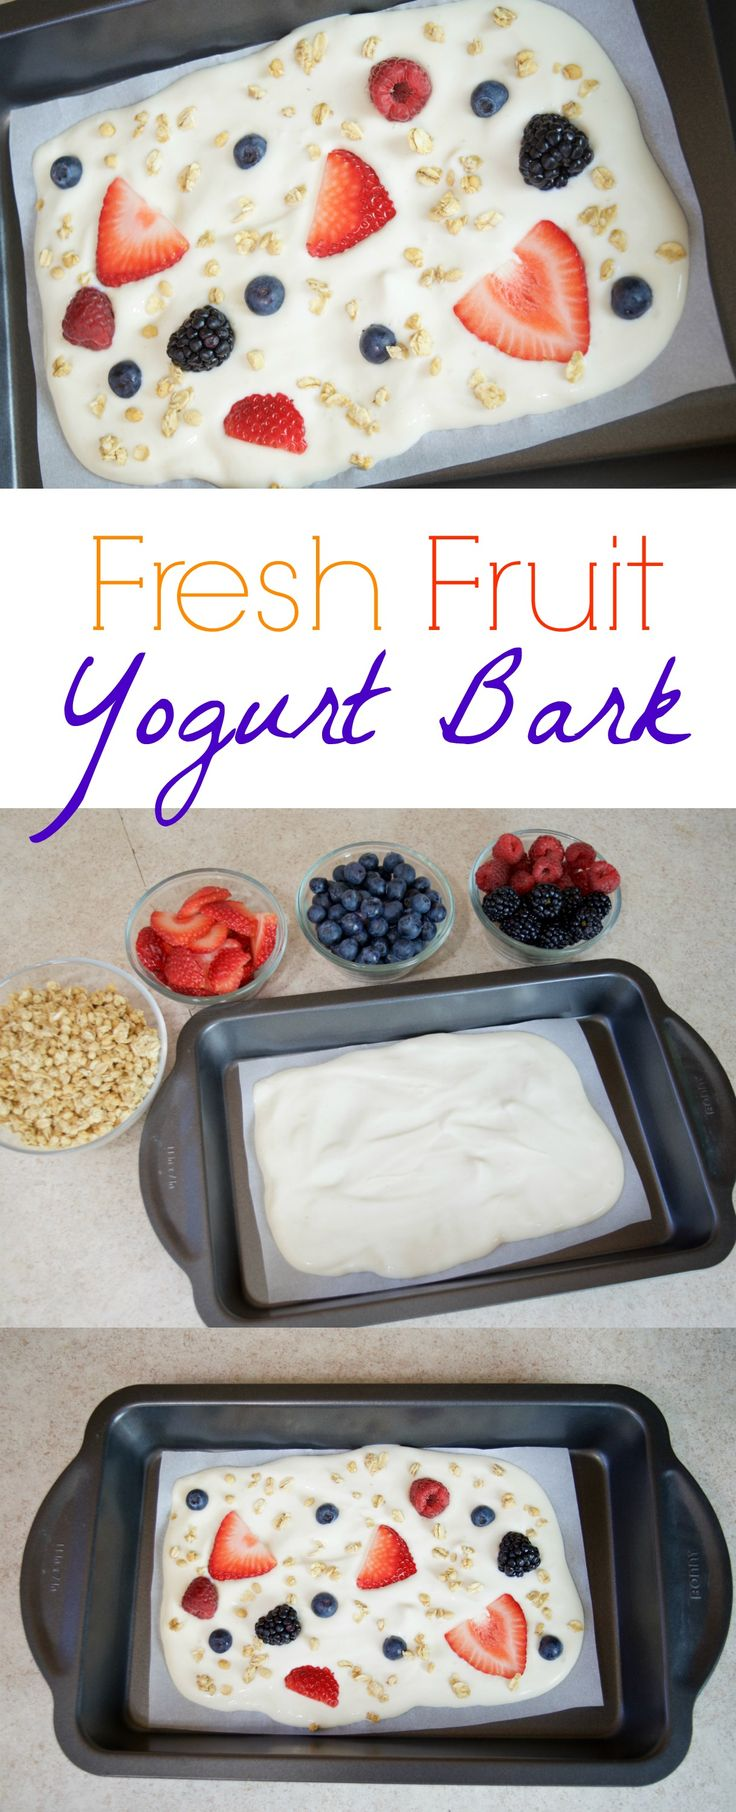 Fresh Fruit Yogurt Bark Recipe - perfect frozen treat for kids, gluten free diets, organic snack, keto diet, and more! It literally only takes a minute to prep then freeze for later! Ad